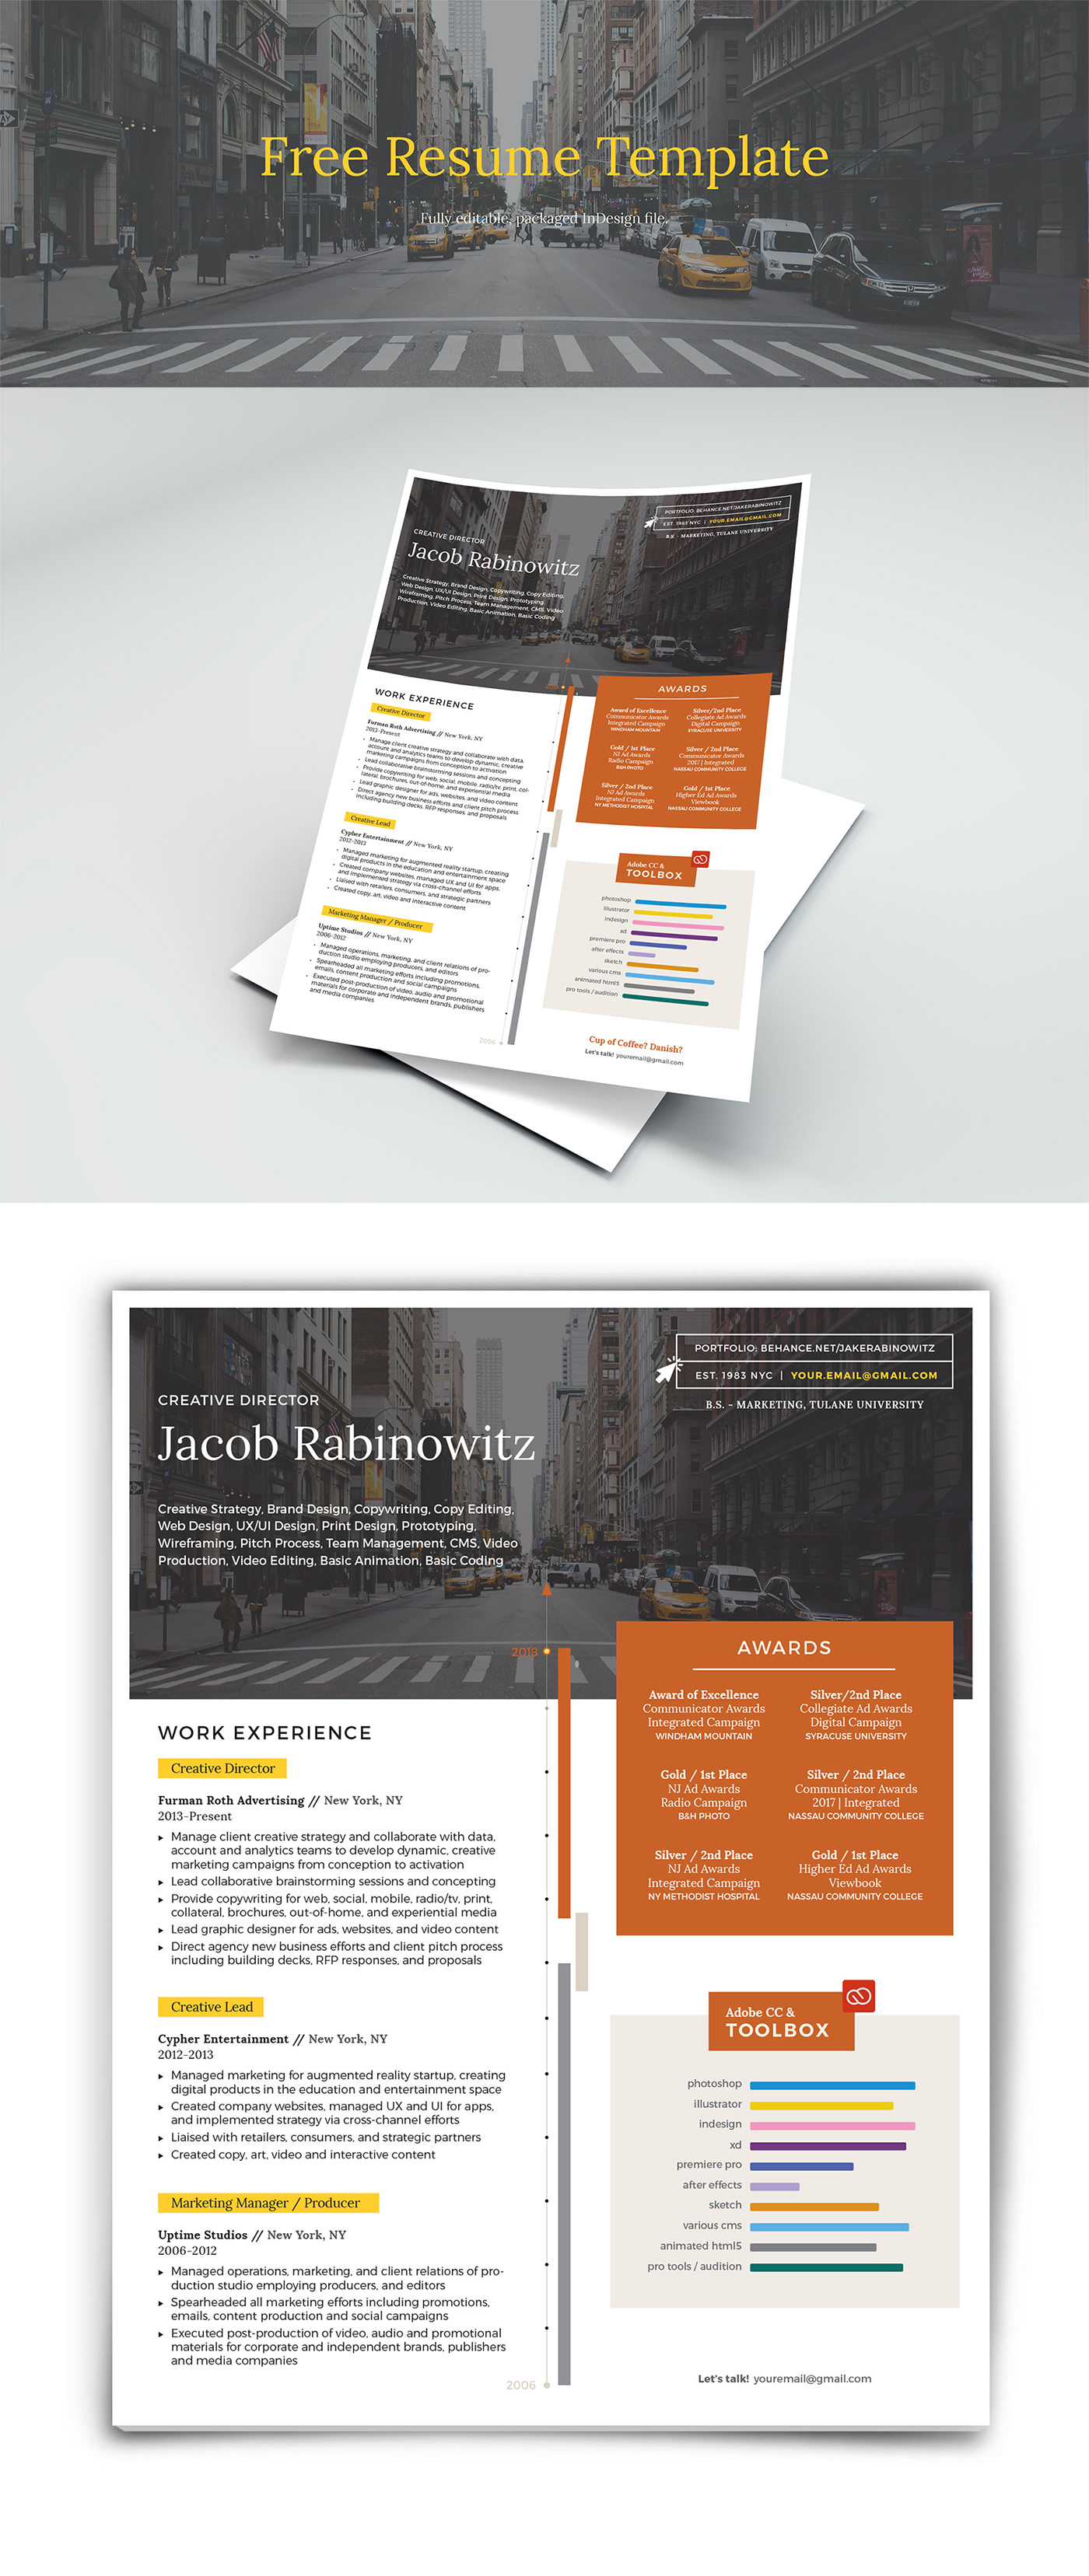 Free Creative Resume Template is an elegant and creative resume template to help your job search.